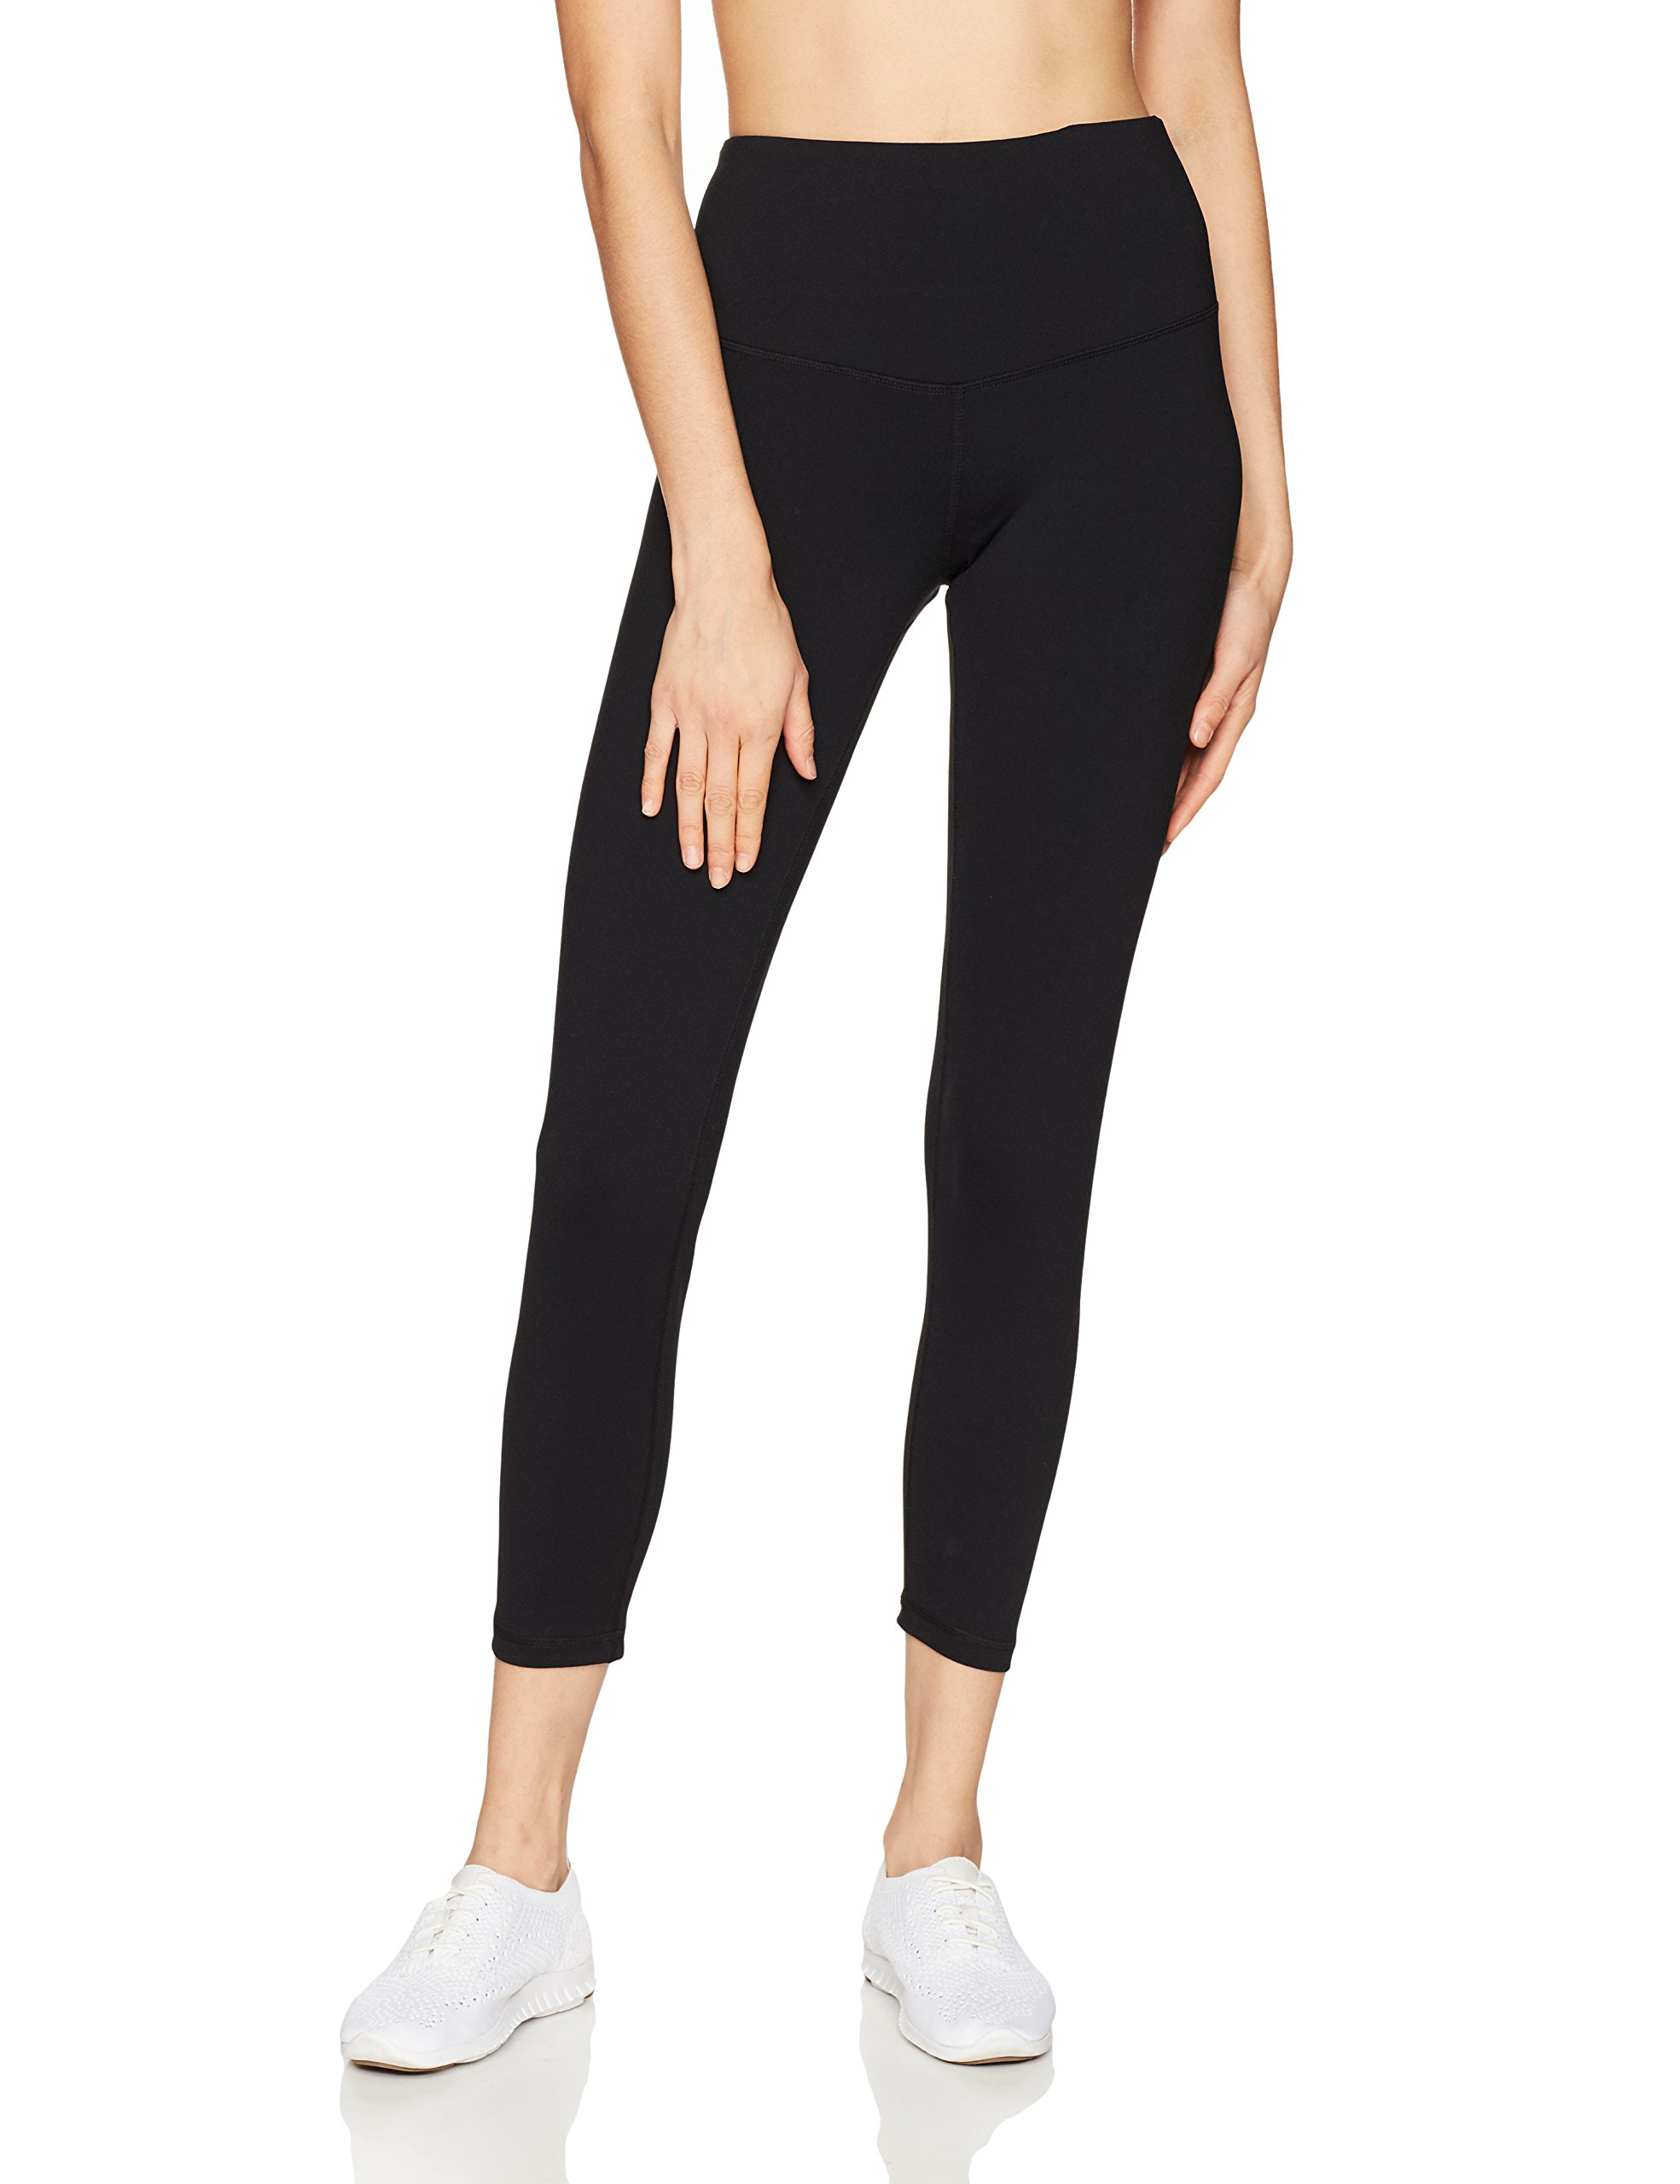 Starter Women's 24'' Cropped Performance Workout Legging, Prime Exclusive, Black, Extra Large